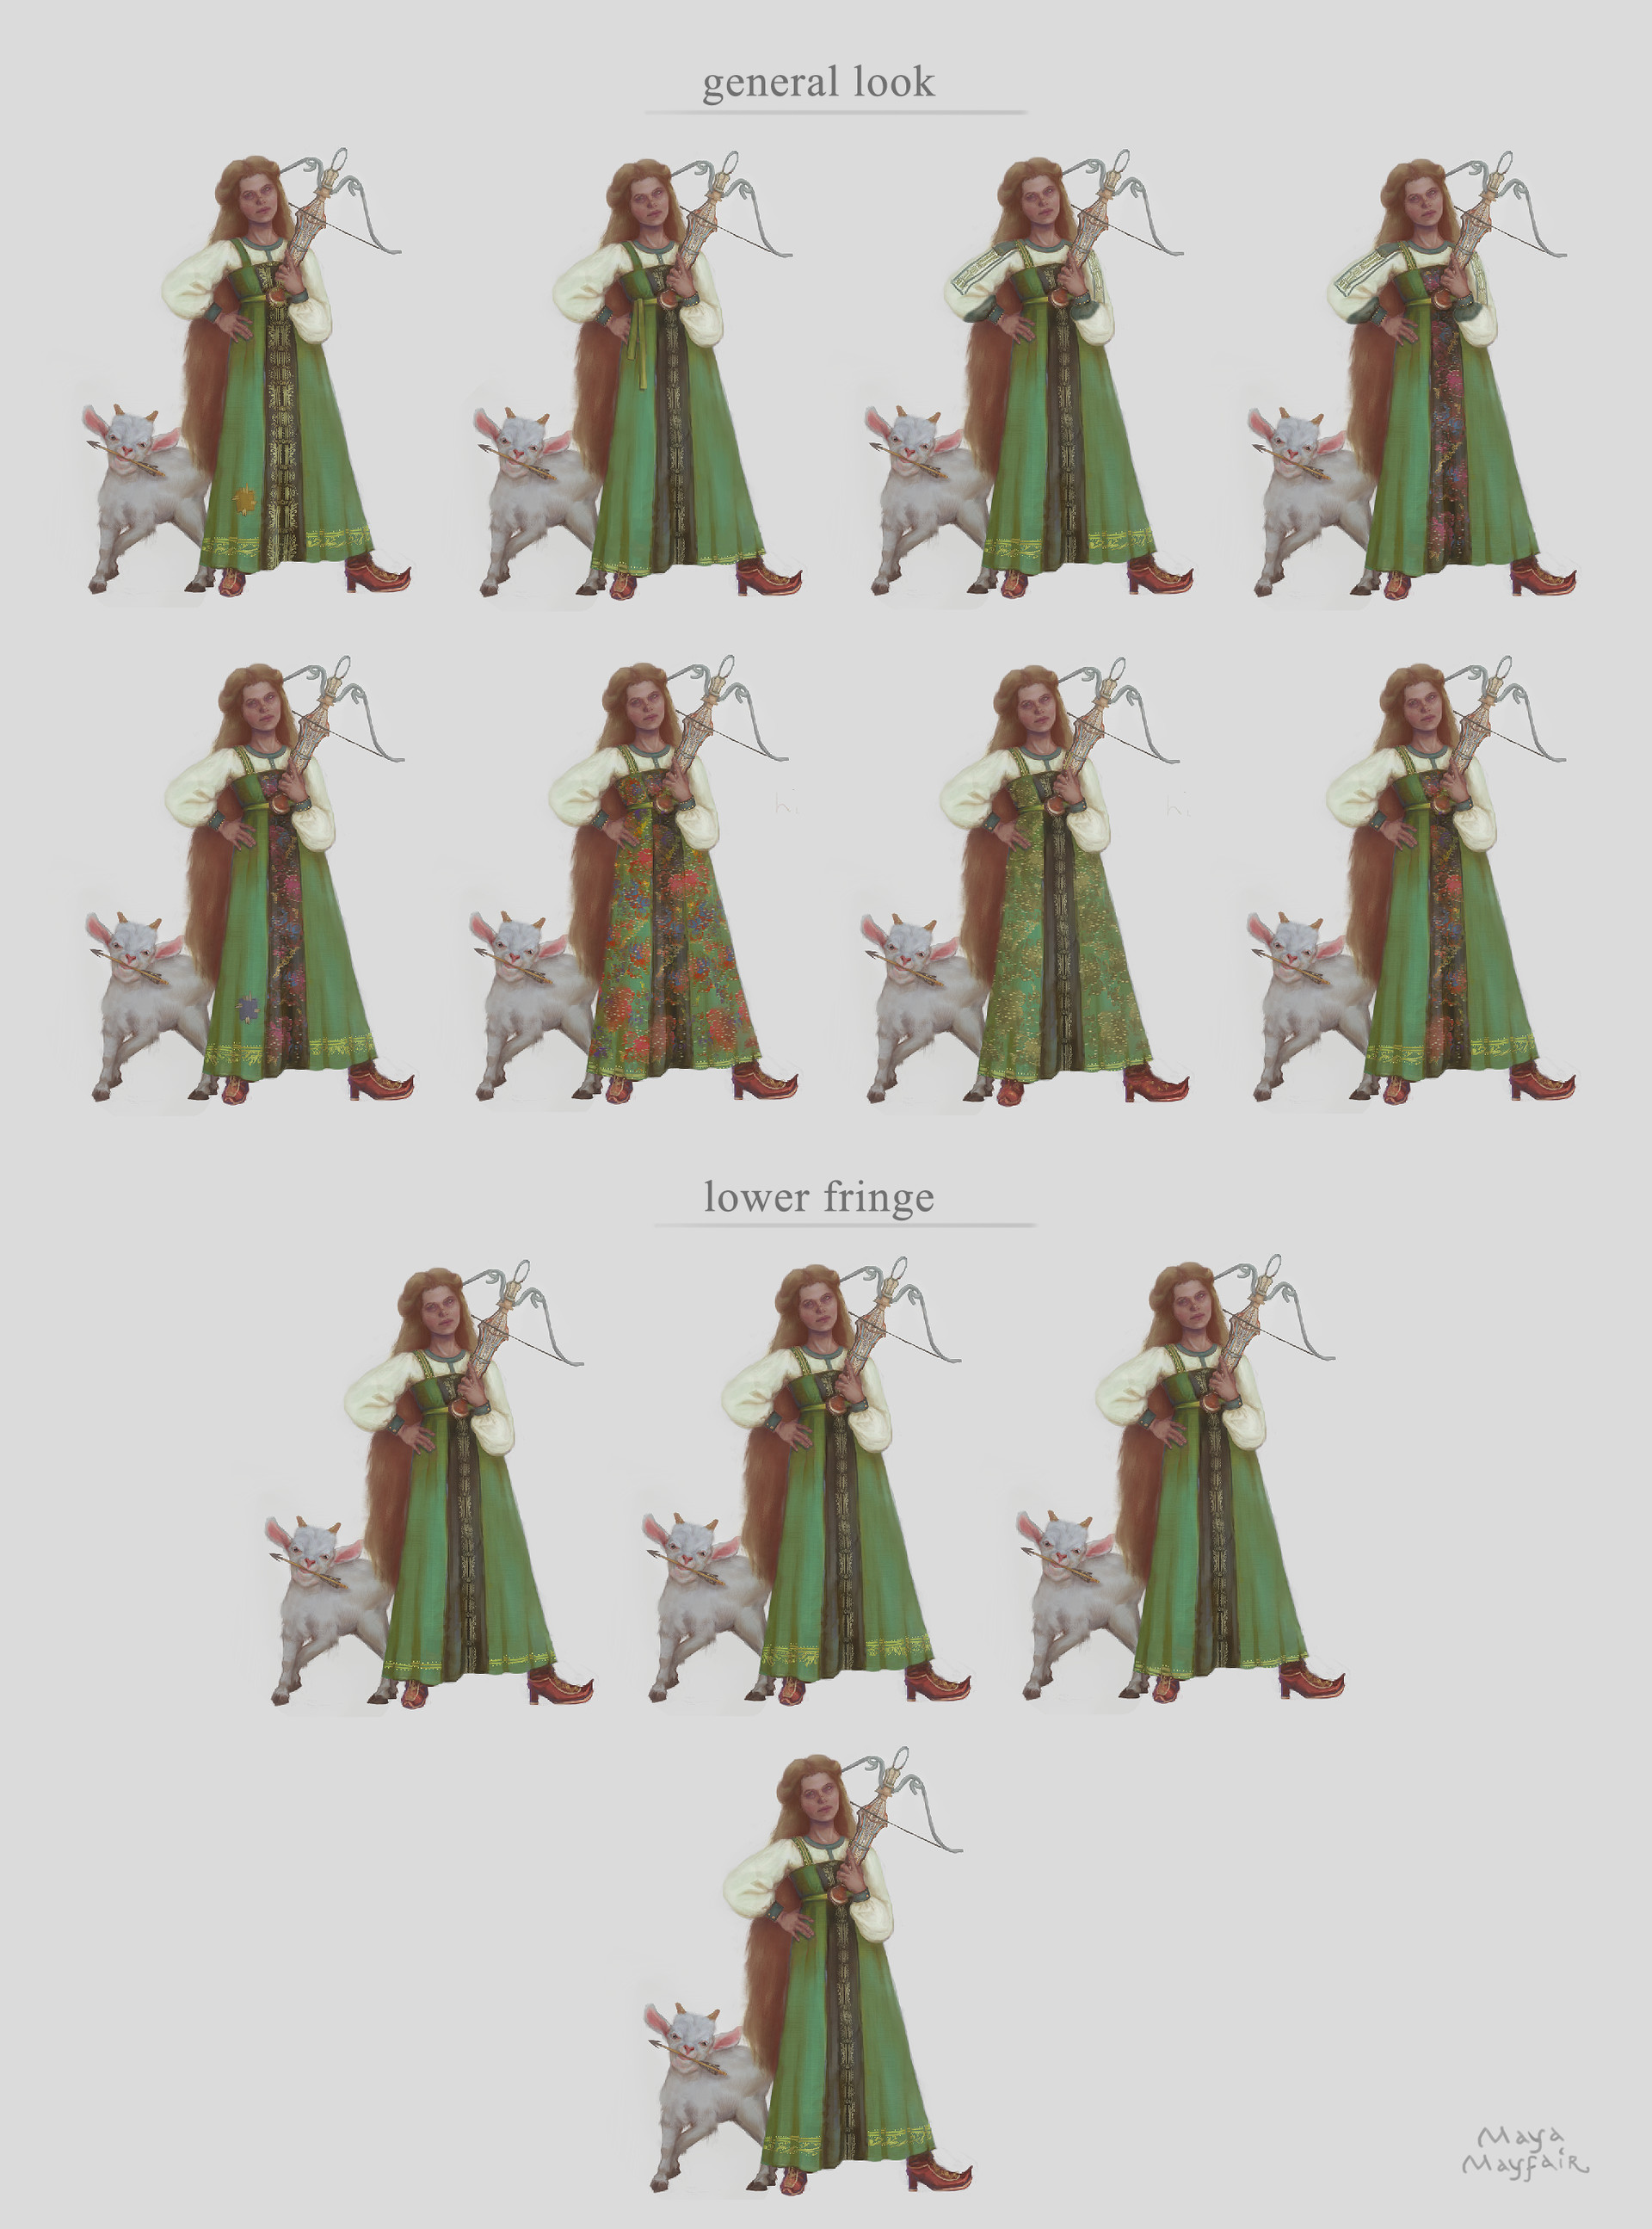 Maya grishanowitch costume variations